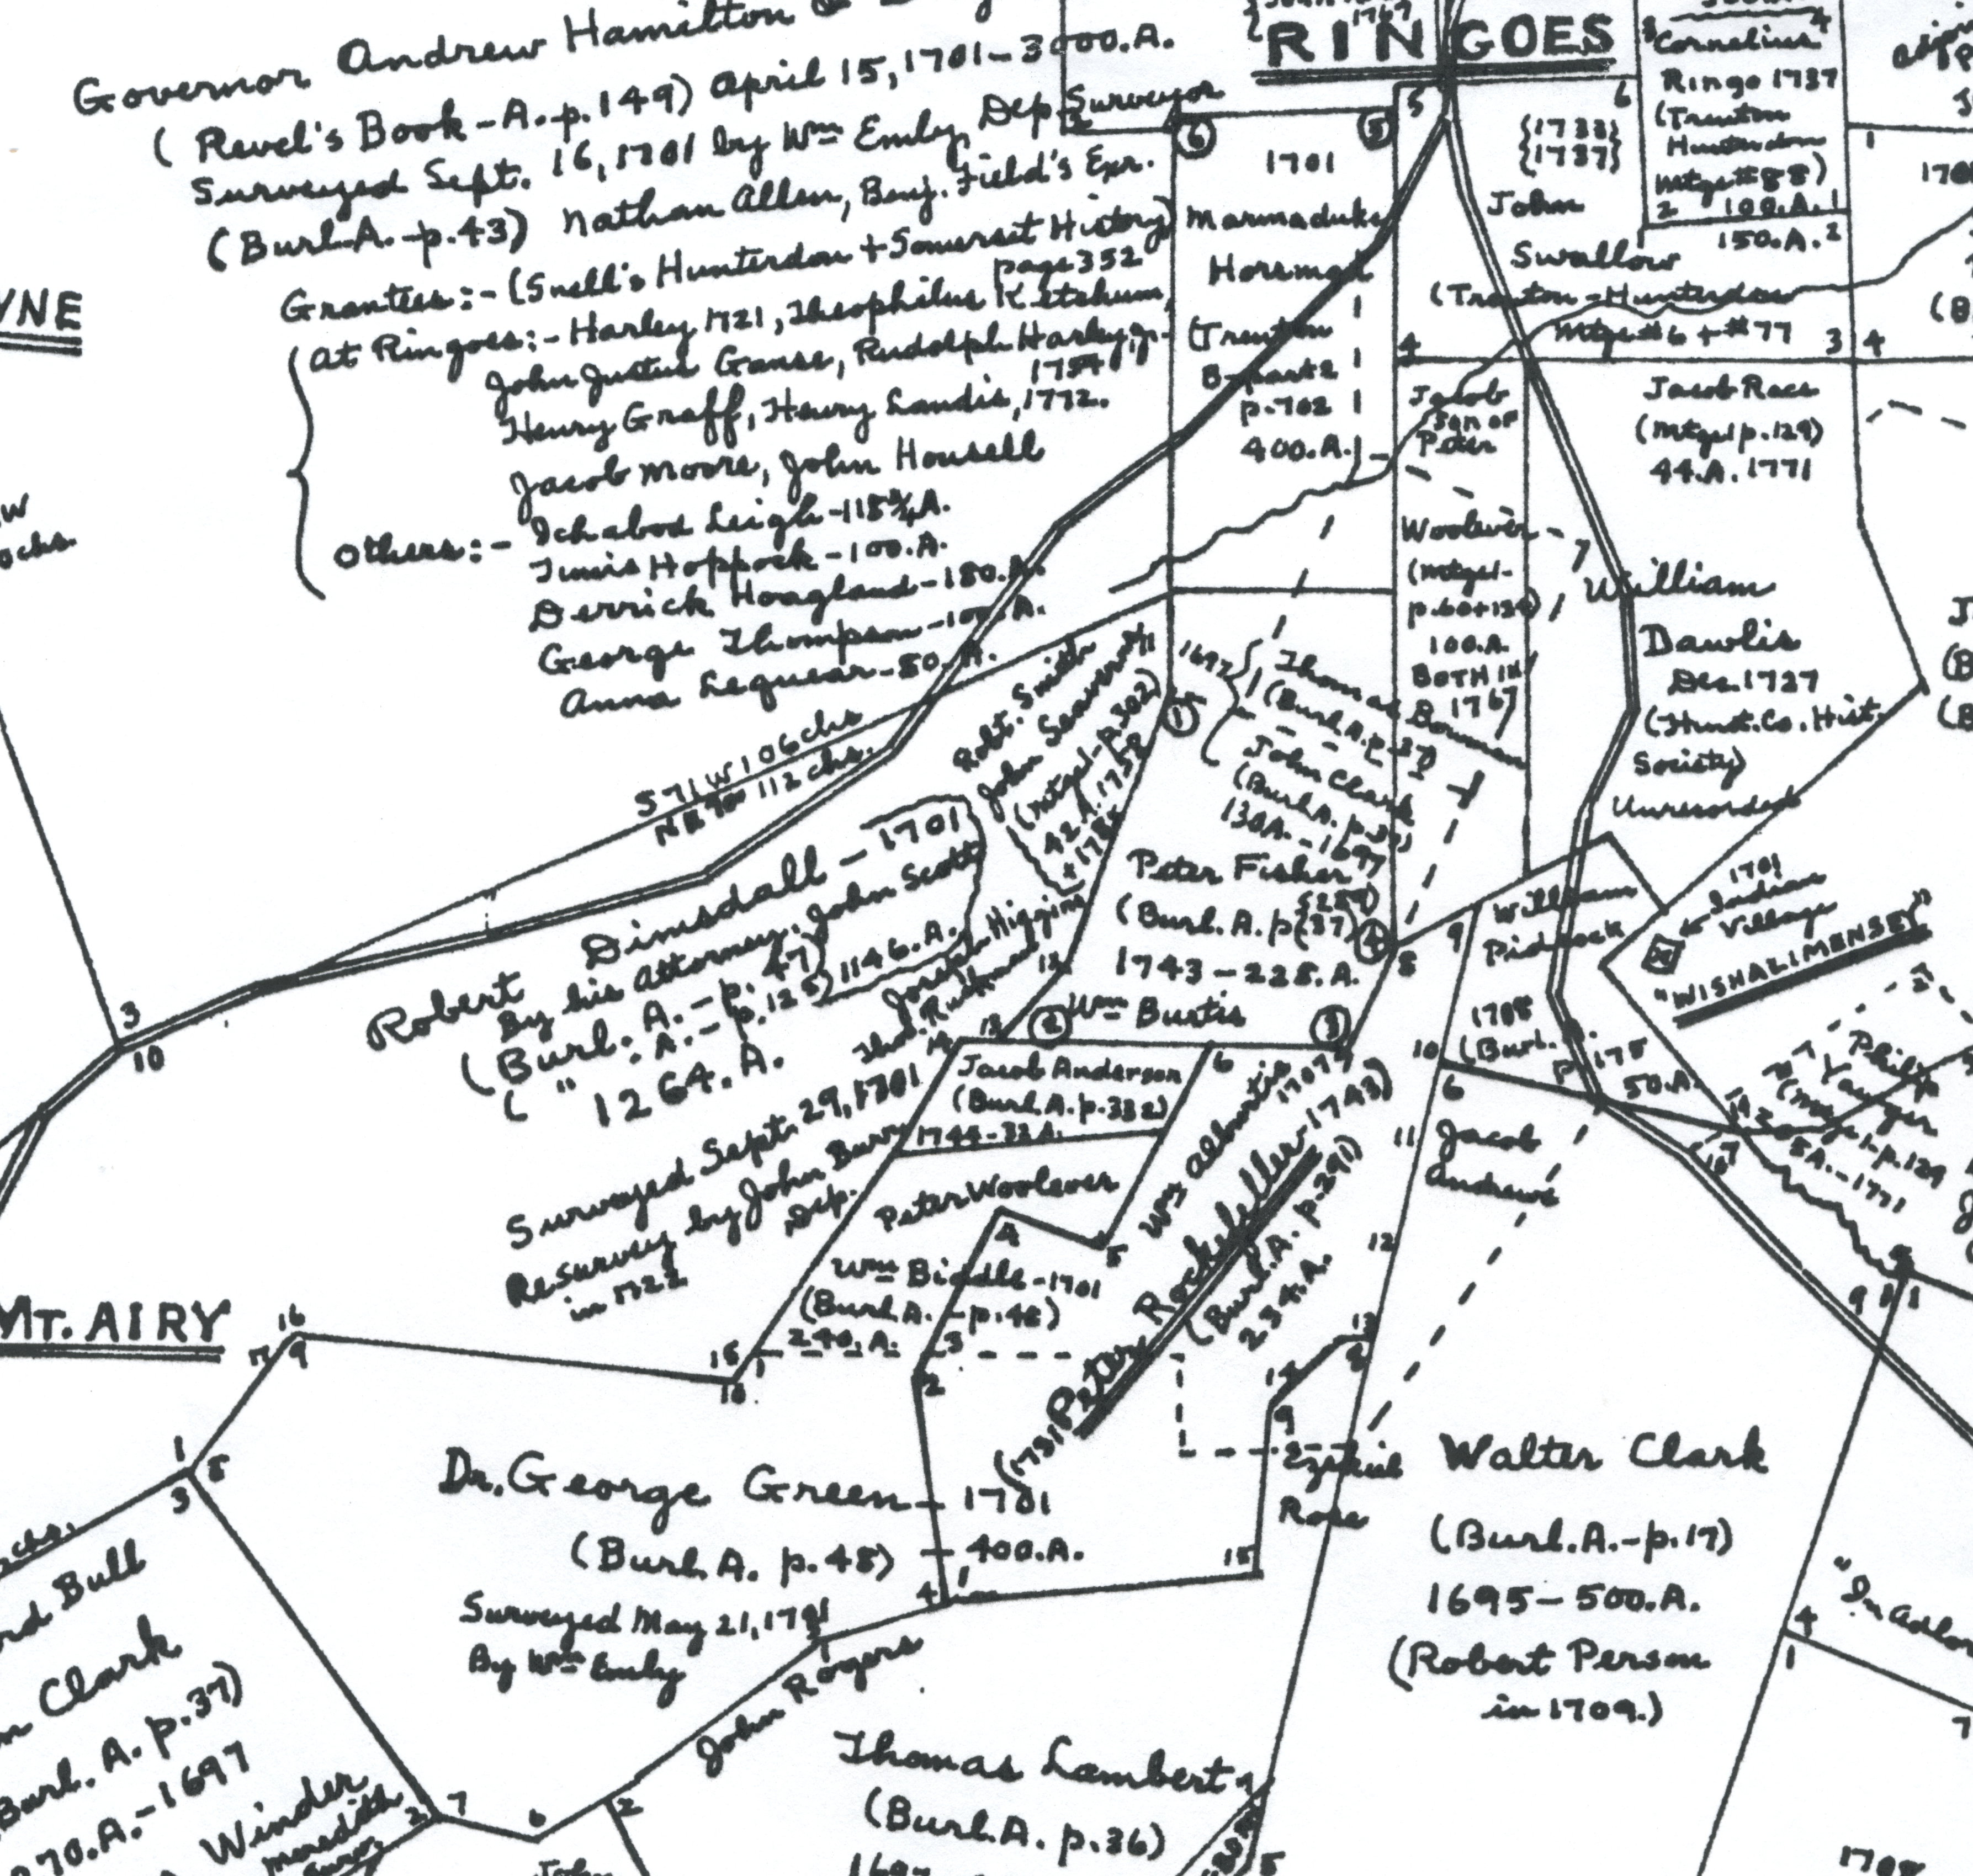 The Amwell Road of 1721 – GOODSD HISTORIES on salem county nj map, hunterdon map with cities, south bound brook nj map, musconetcong river nj map, delran township nj map, union county map, bergen county nj map, glen gardner nj map, evesham township nj map, stafford county nj map, new jersey central nj town map, new jersey hudson county nj map, morris county nj map, palisades interstate parkway nj map, sullivan county nj map, suffolk county nj map, greenwich township nj map, hunterdon co map, annandale nj map, west windsor township nj map,